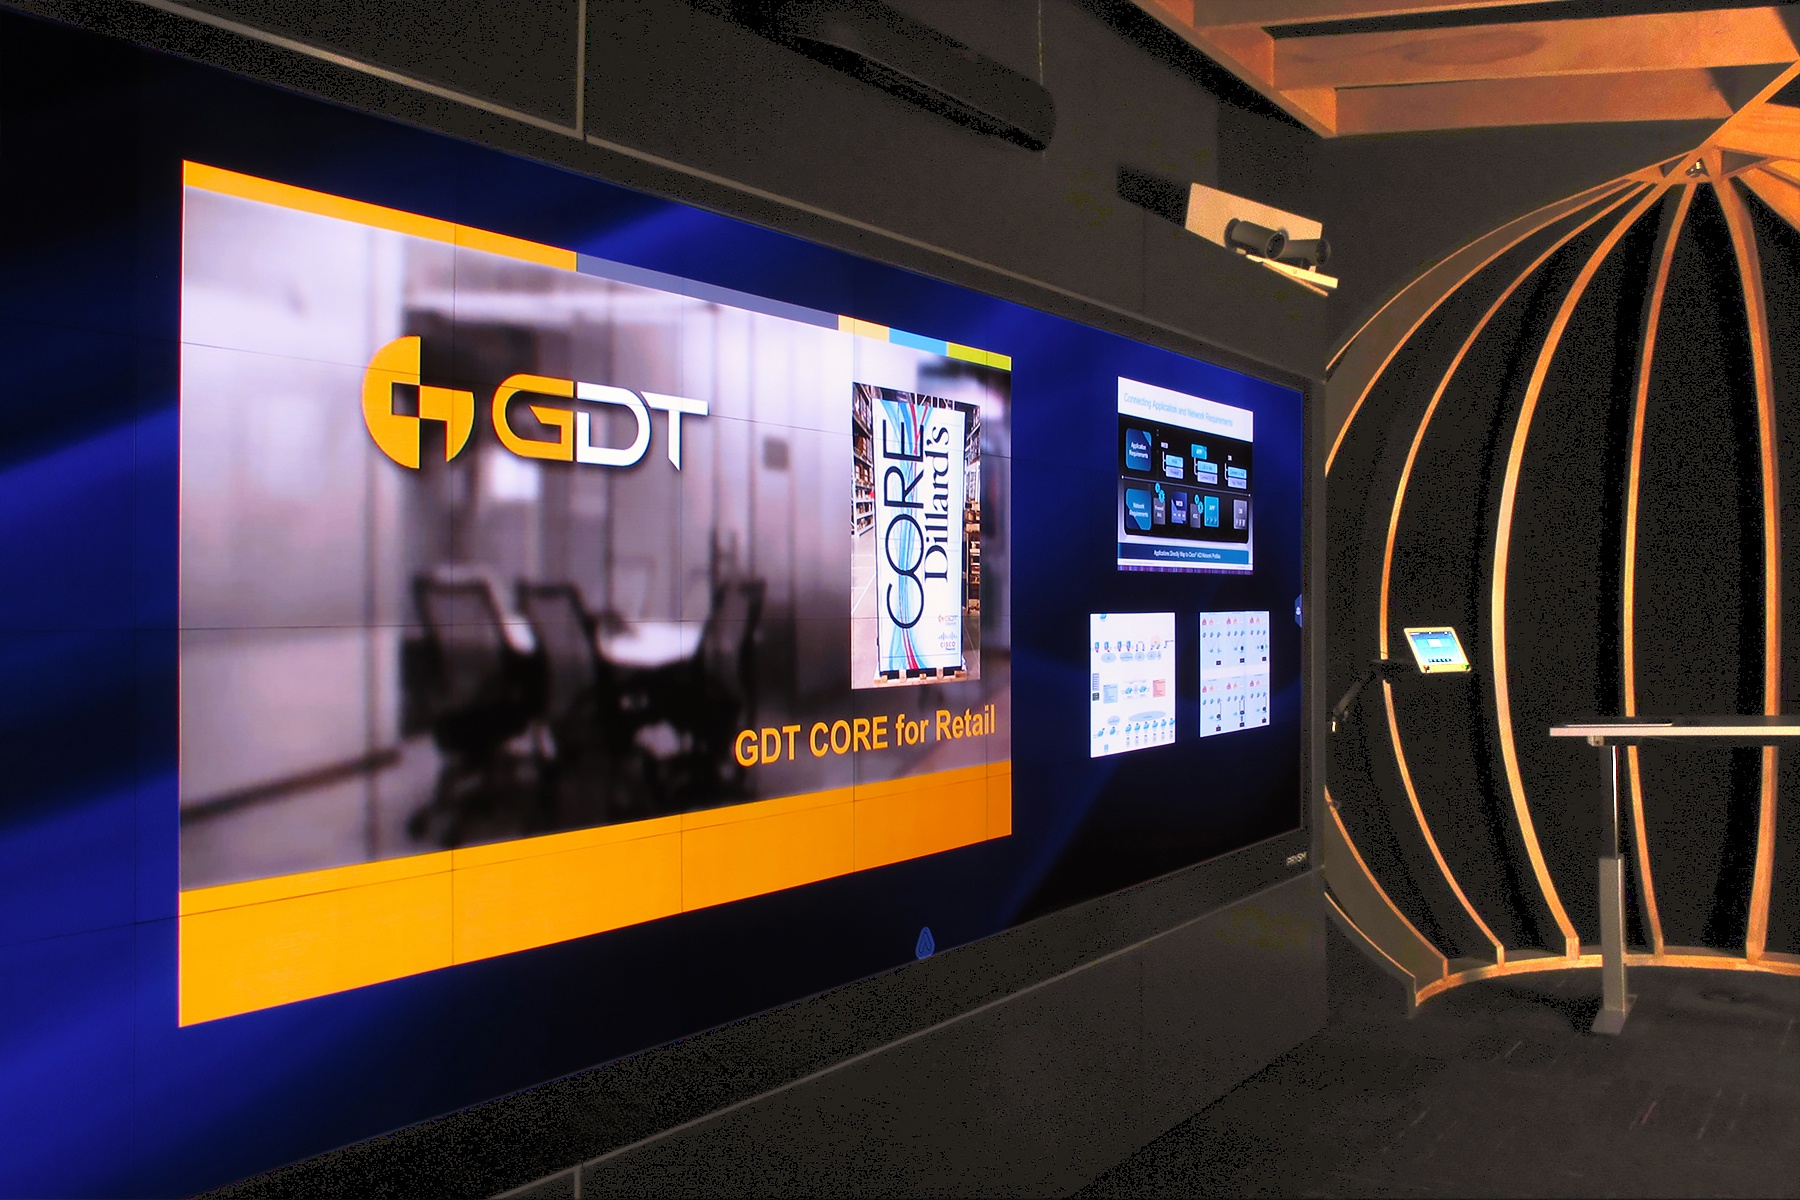 GDT Installs Prysm Video Wall as a Customer Experience Centerpiece